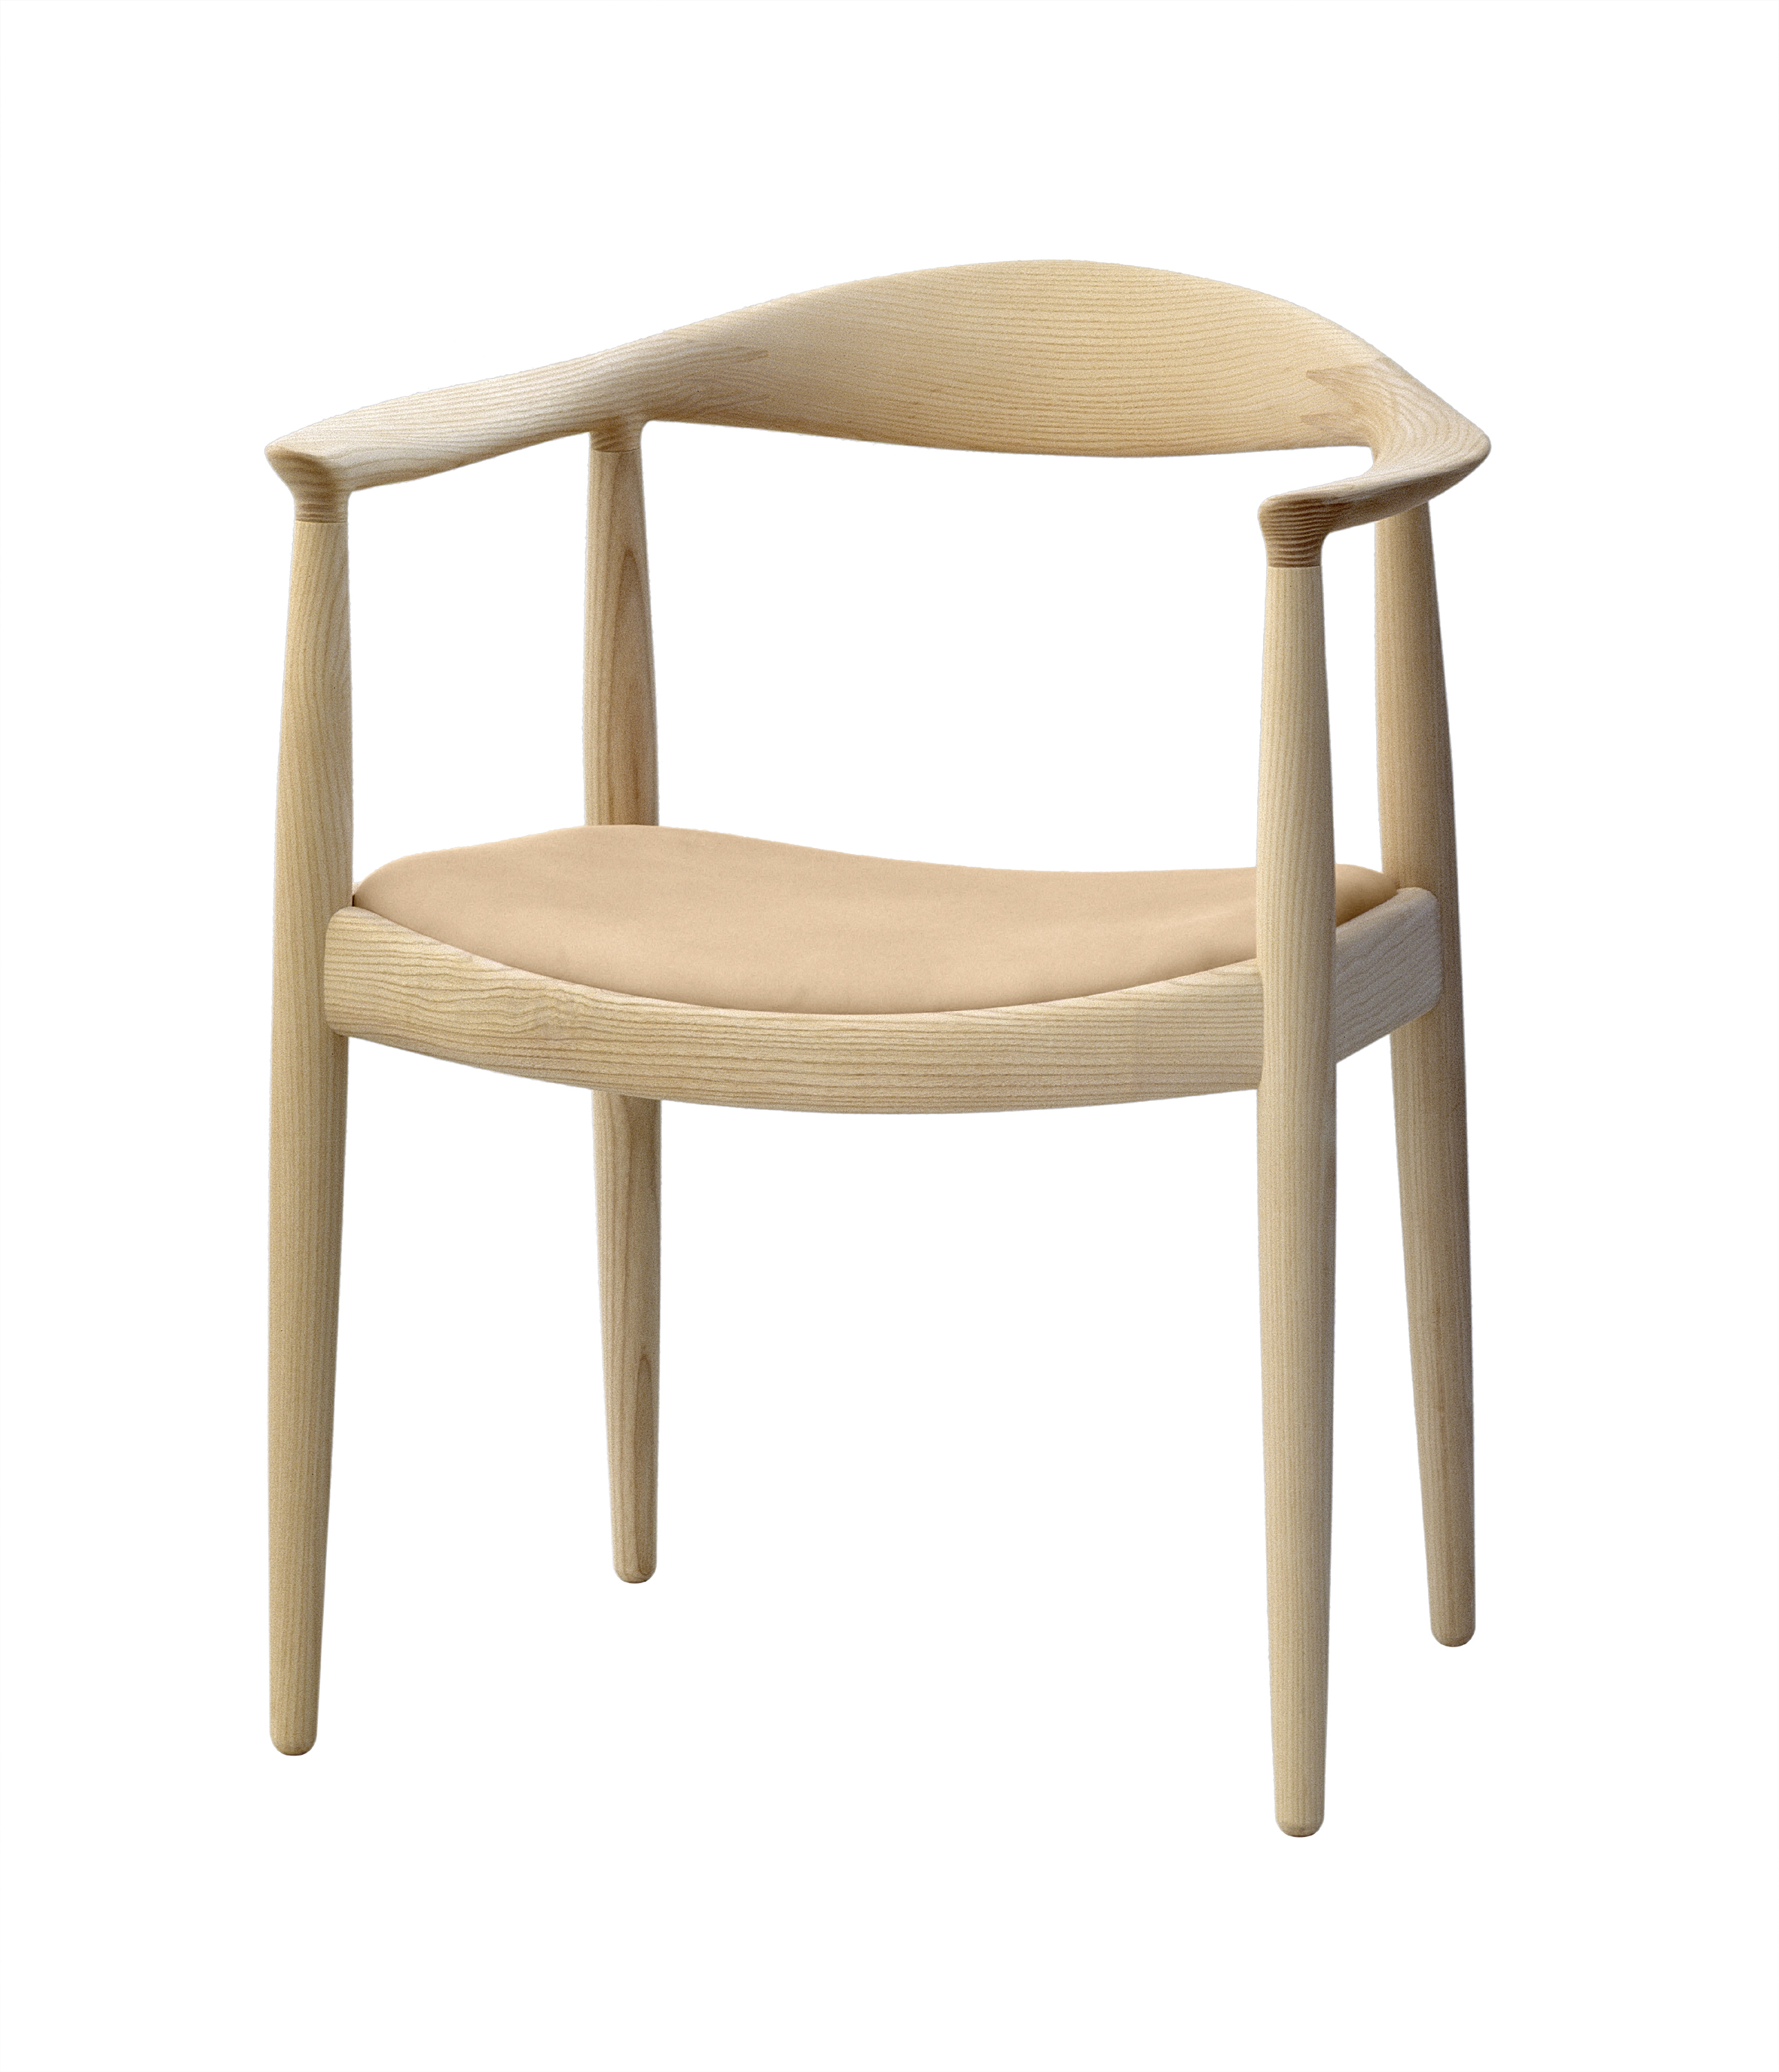 The chair round chair by hans wegner - The Chair Pp 503 By Hans Wegner In Ash With Vegetal Leather Seat